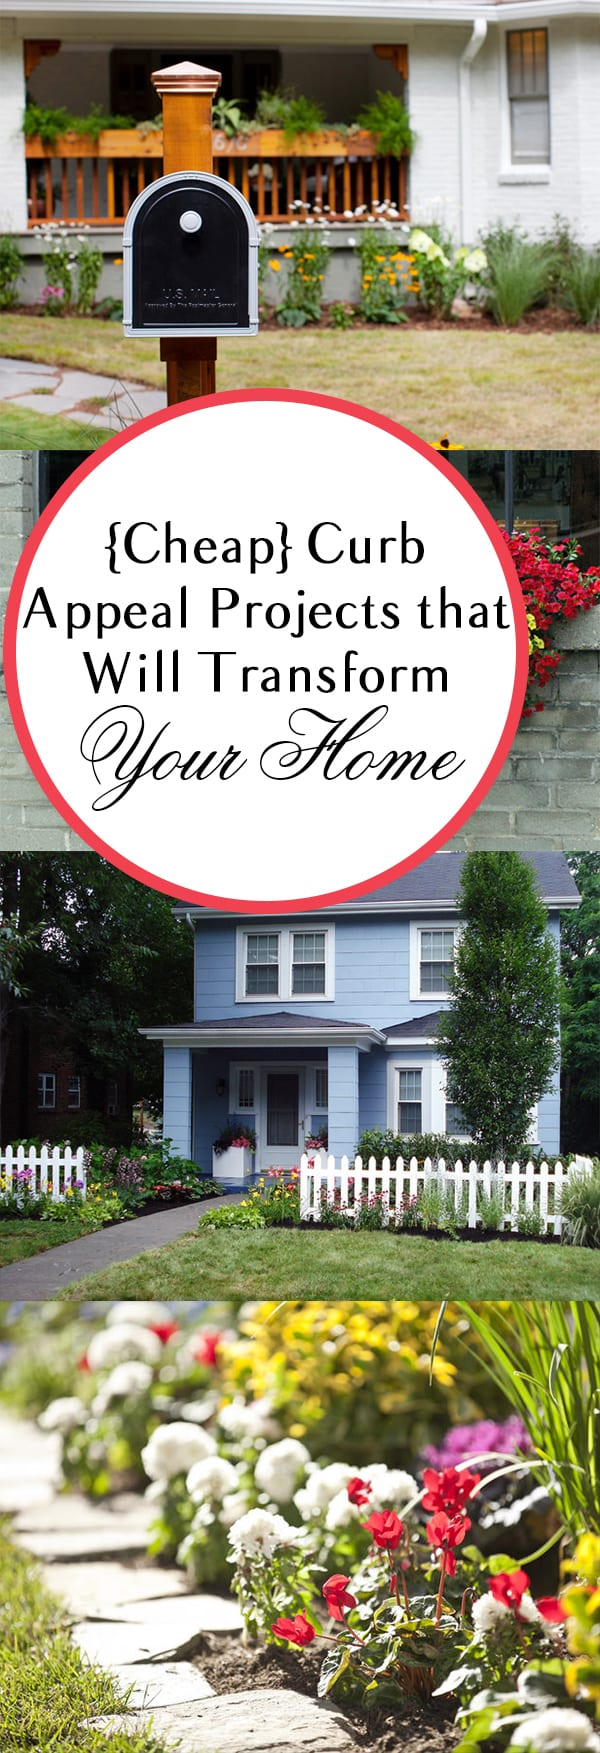 Home upgrades, DIY curb appeal projects, easy home transformations, home improvement, popular pin, easy home improvement, DIY home improvement projects.